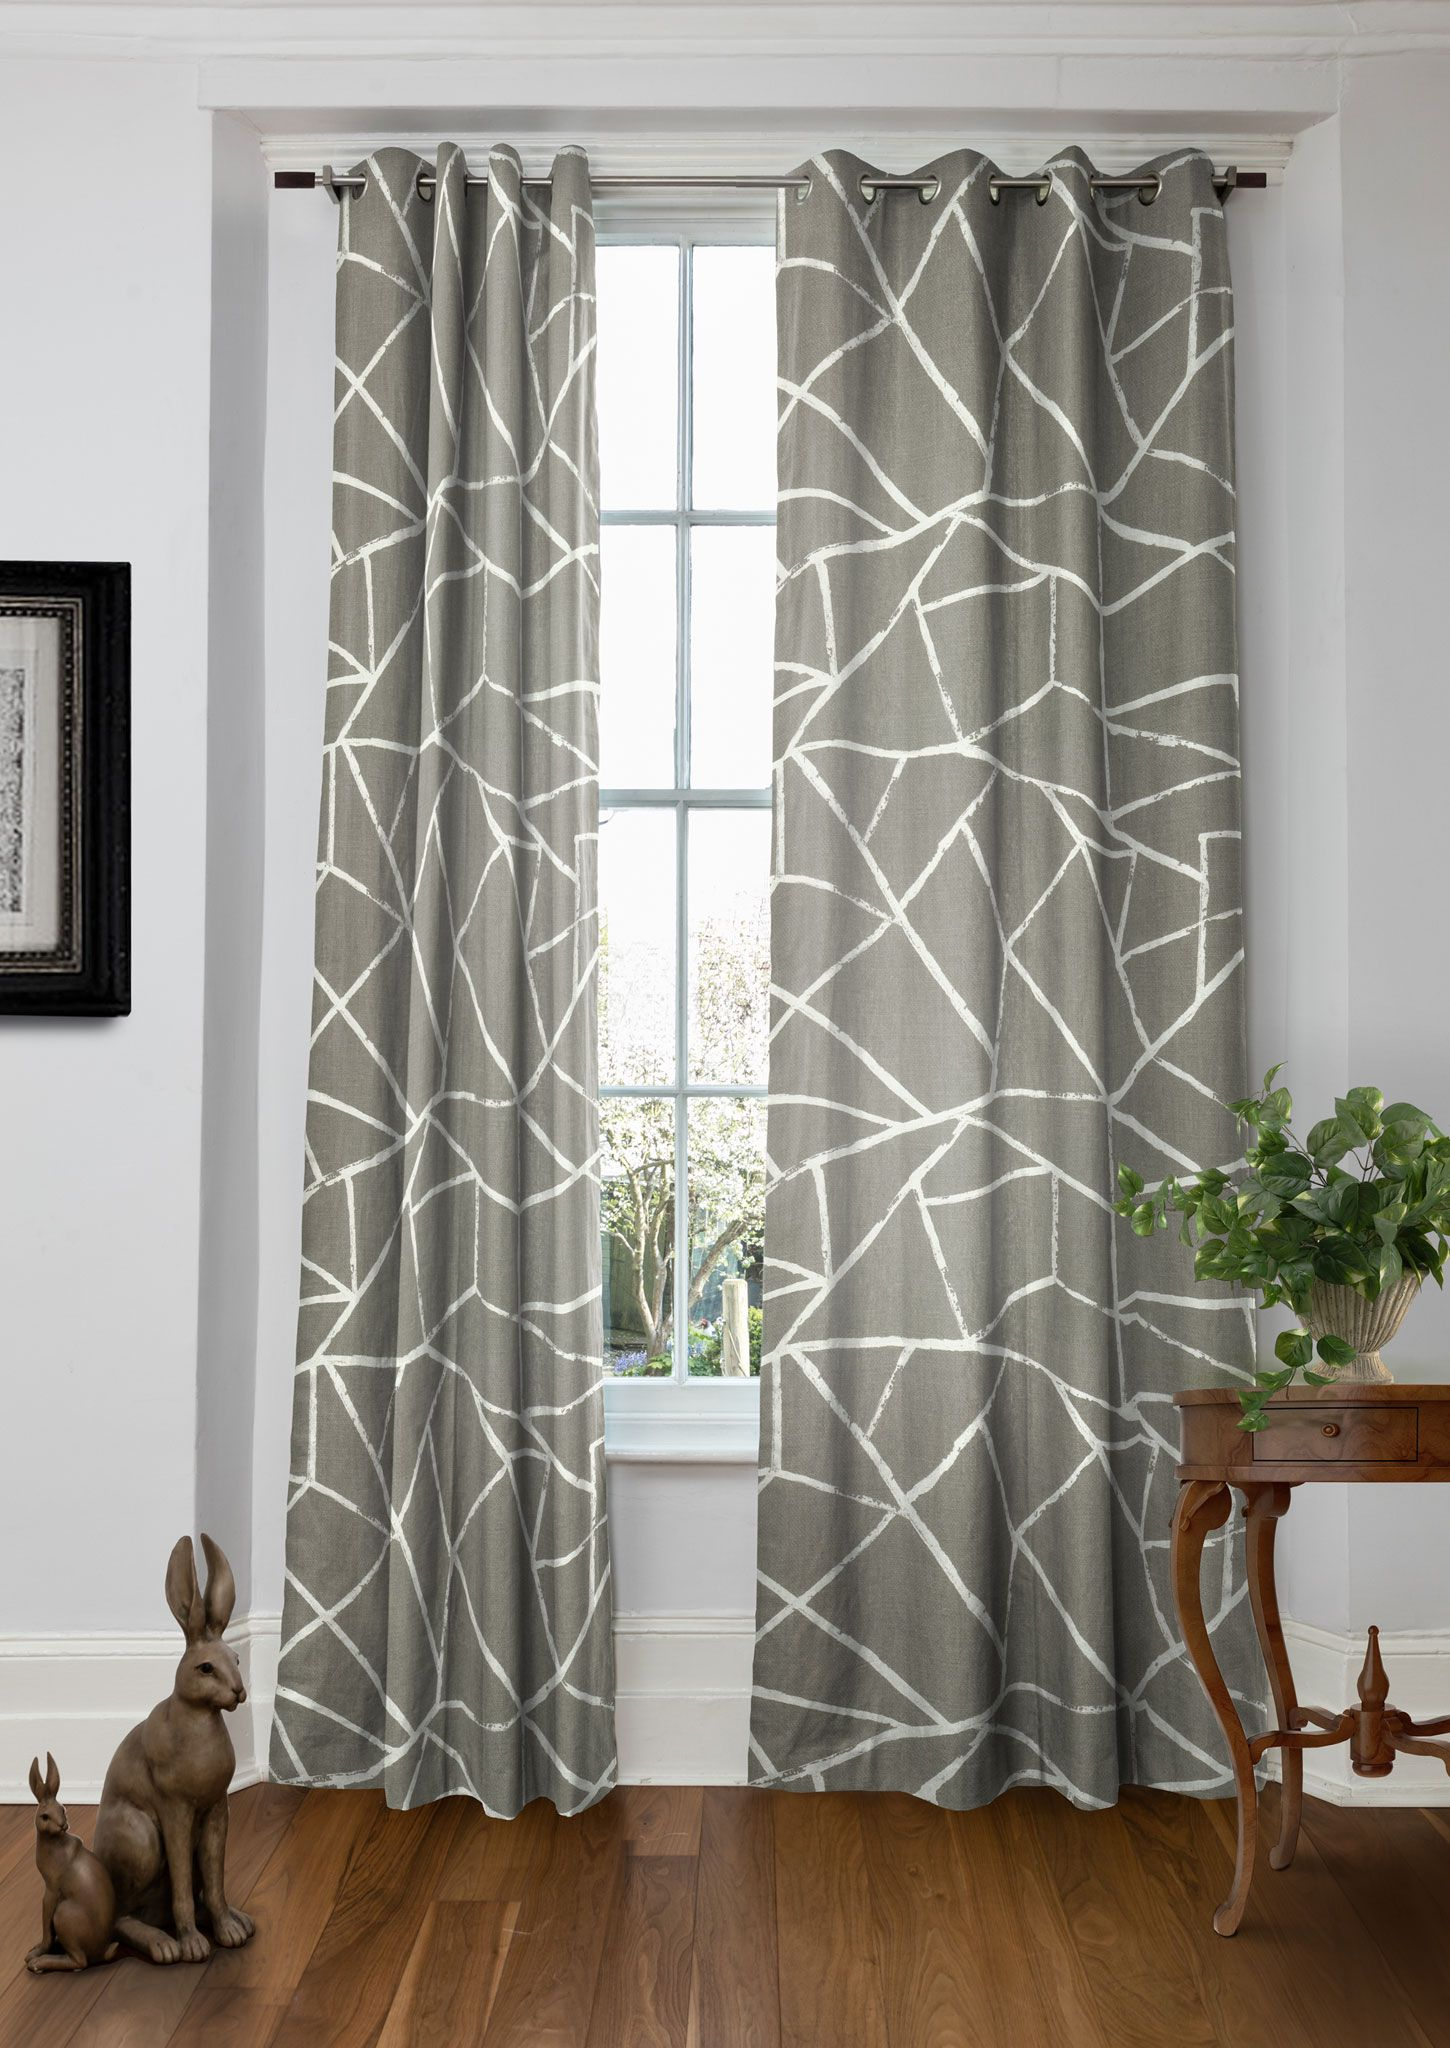 Moderne Ulysses Geometric Curtains In Subtle Natural Hue Made From 100 Cotton Geometric Curtains Curtains Remodel Bedroom